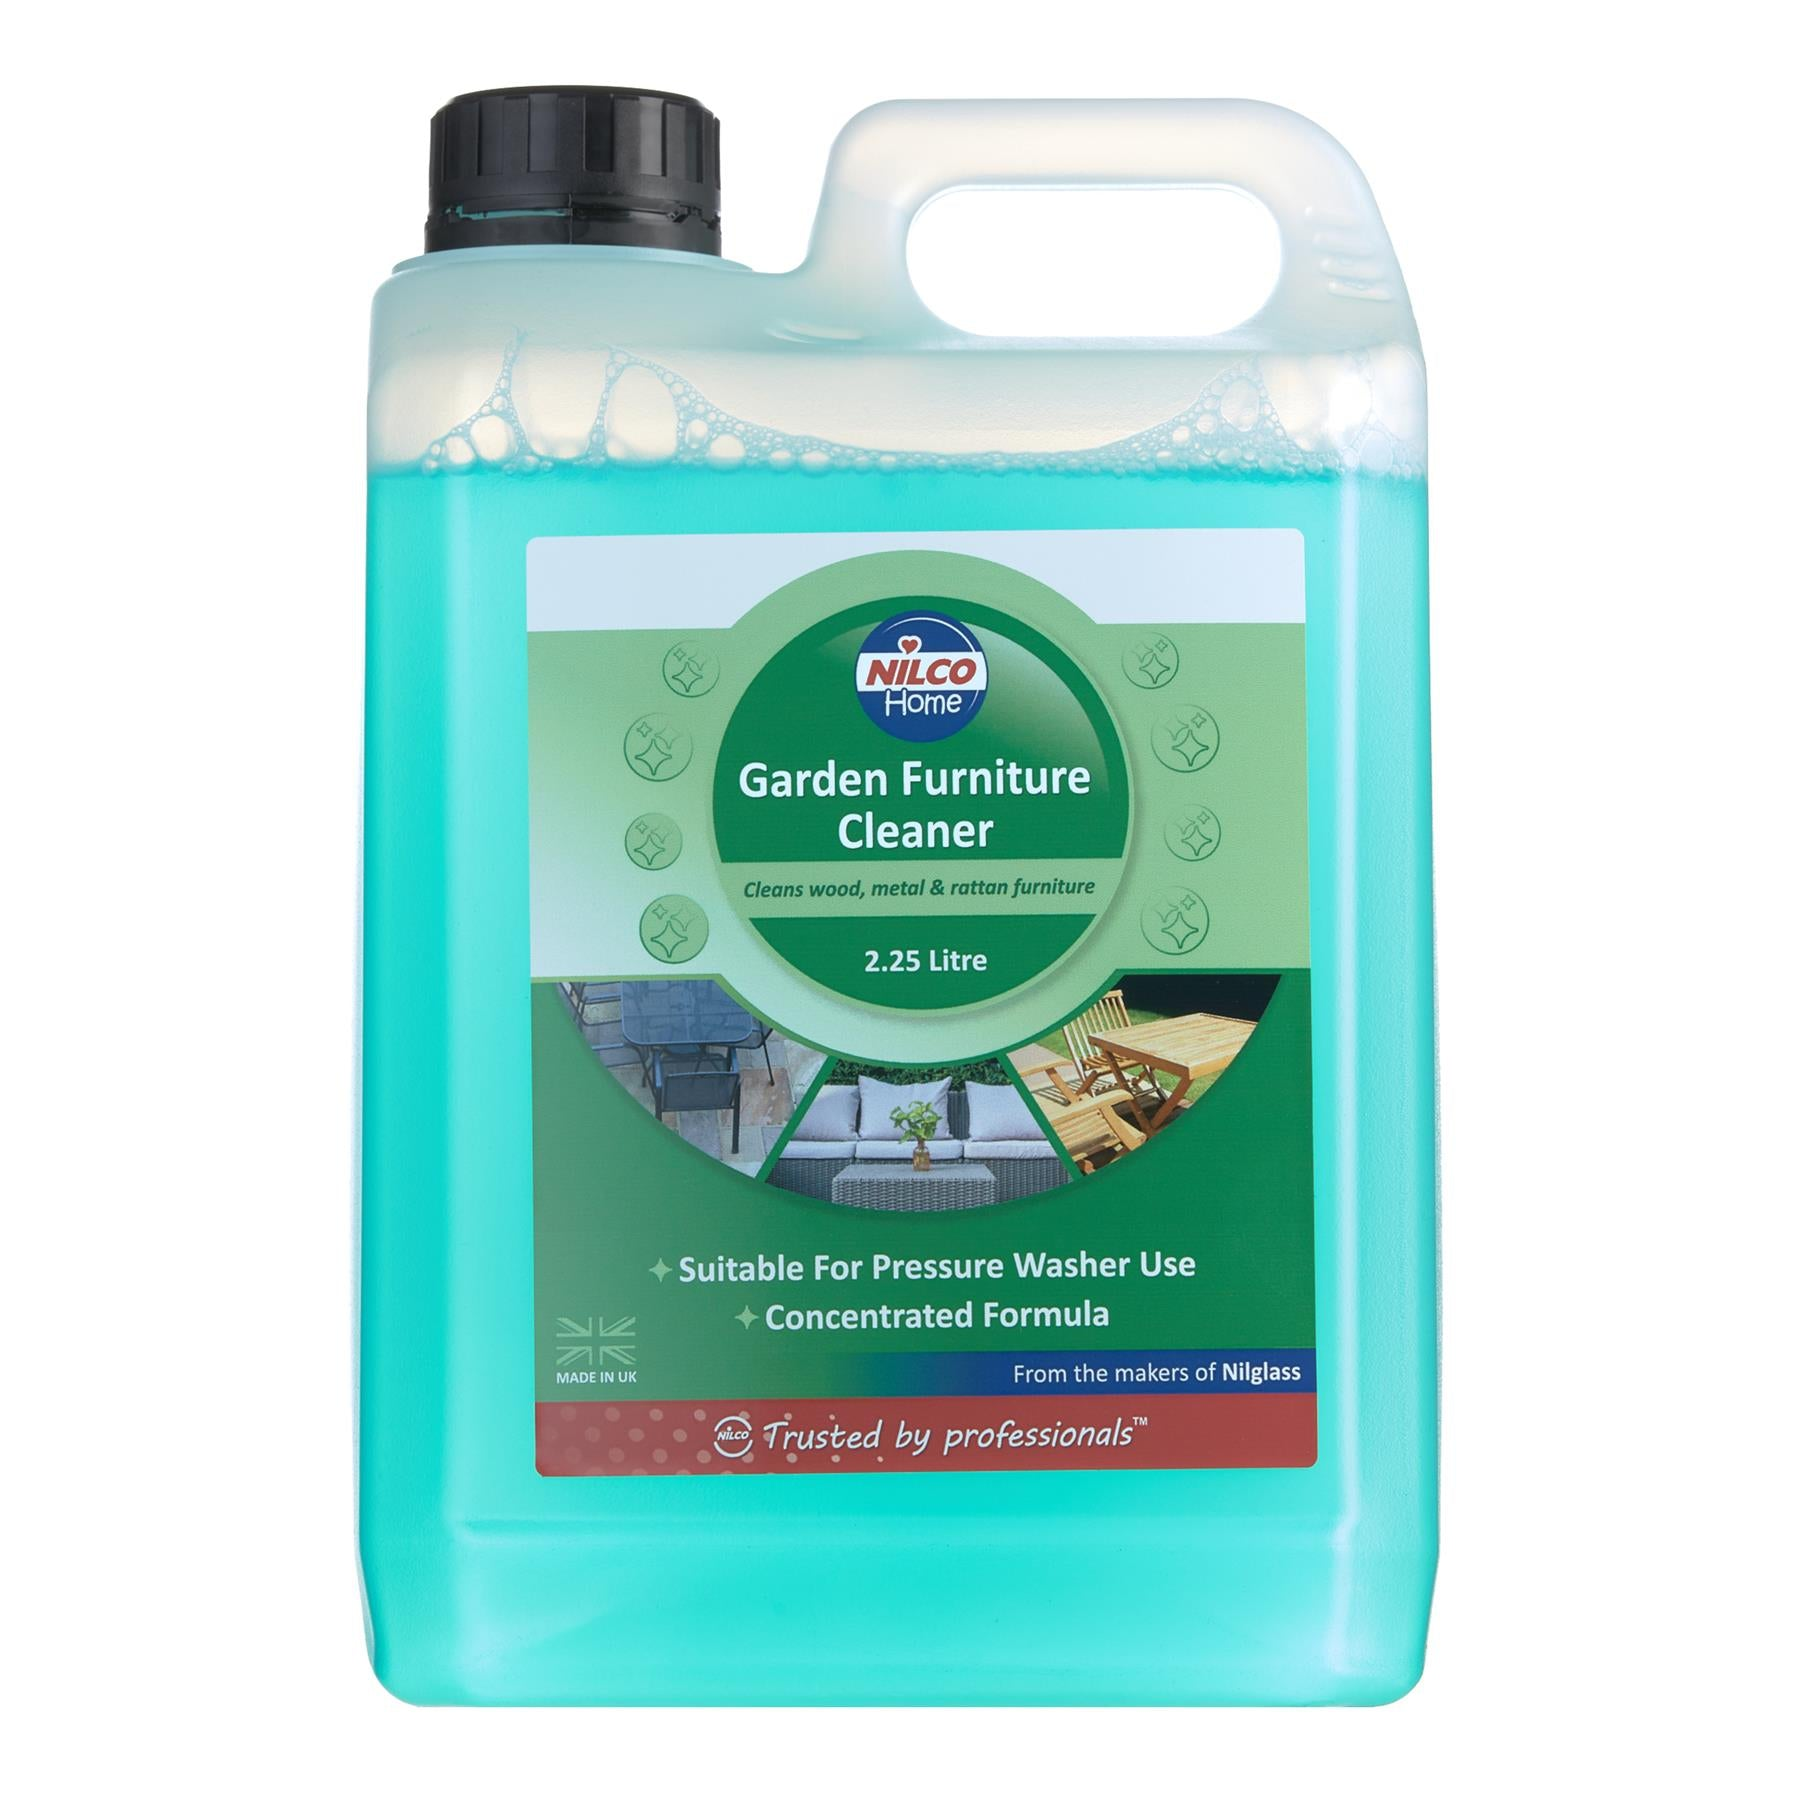 Nilco Garden Furniture Cleaner 2.25L